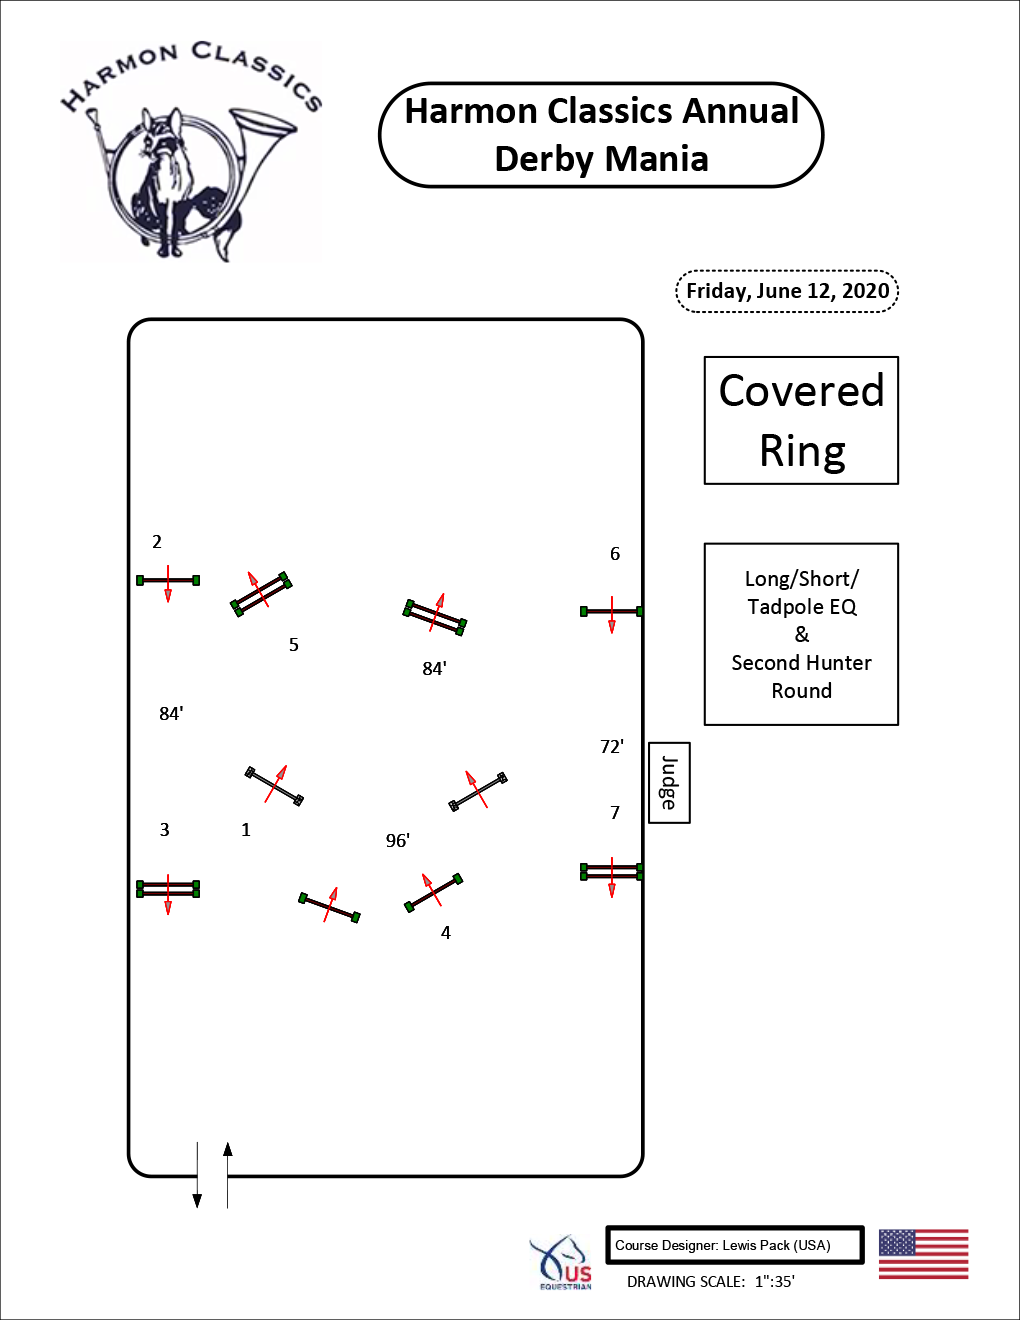 Covered-Arena-Friday6-12-Long-Short-St-Tadpole-Eq-and-Second-Hunter-Round-Harmon-Classics-Derby-Mania